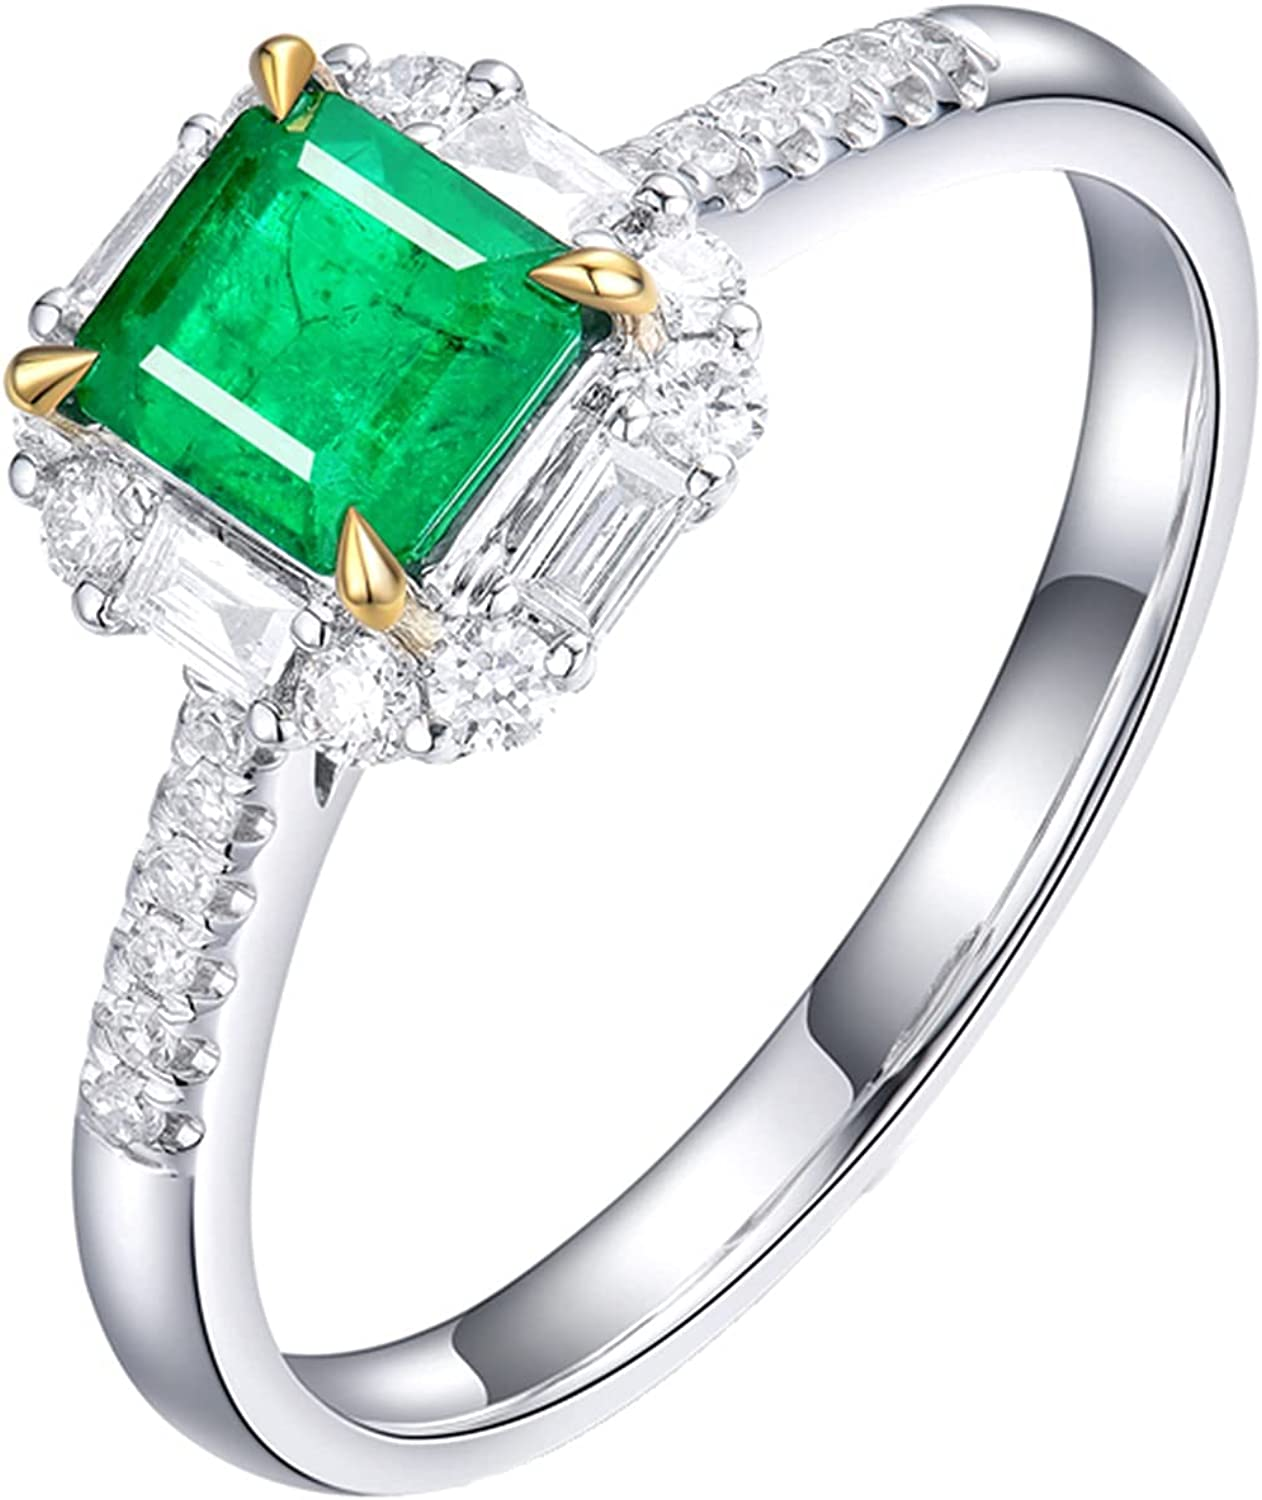 Epinki Complete Free Shipping Women 18K White Gold Ring Green overseas 0.56ct wit Emerald Square